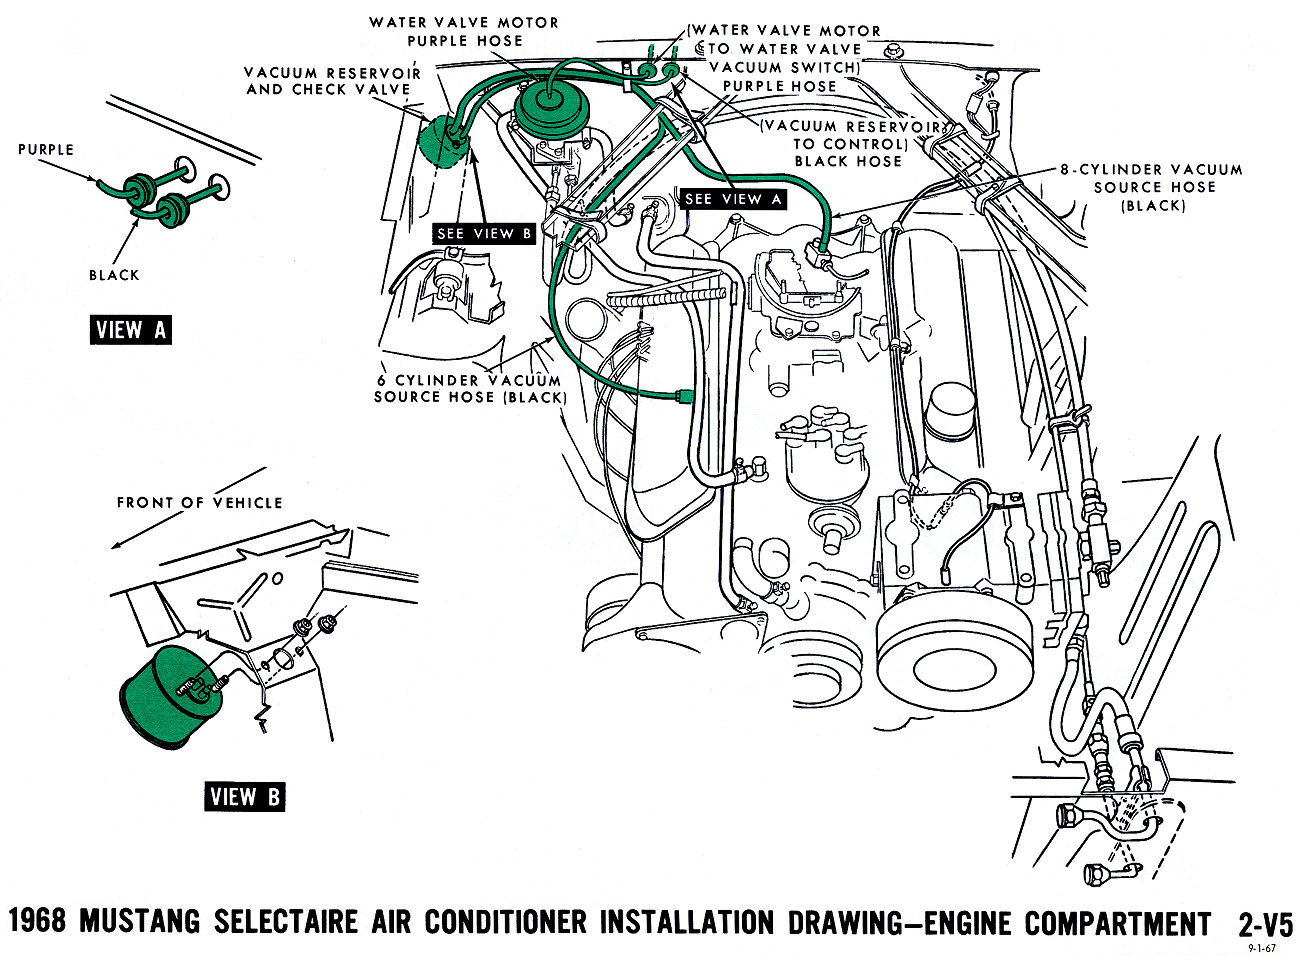 1968 Mustang Vacuum Diagrams on 1968 corvette wiper motor wiring diagram